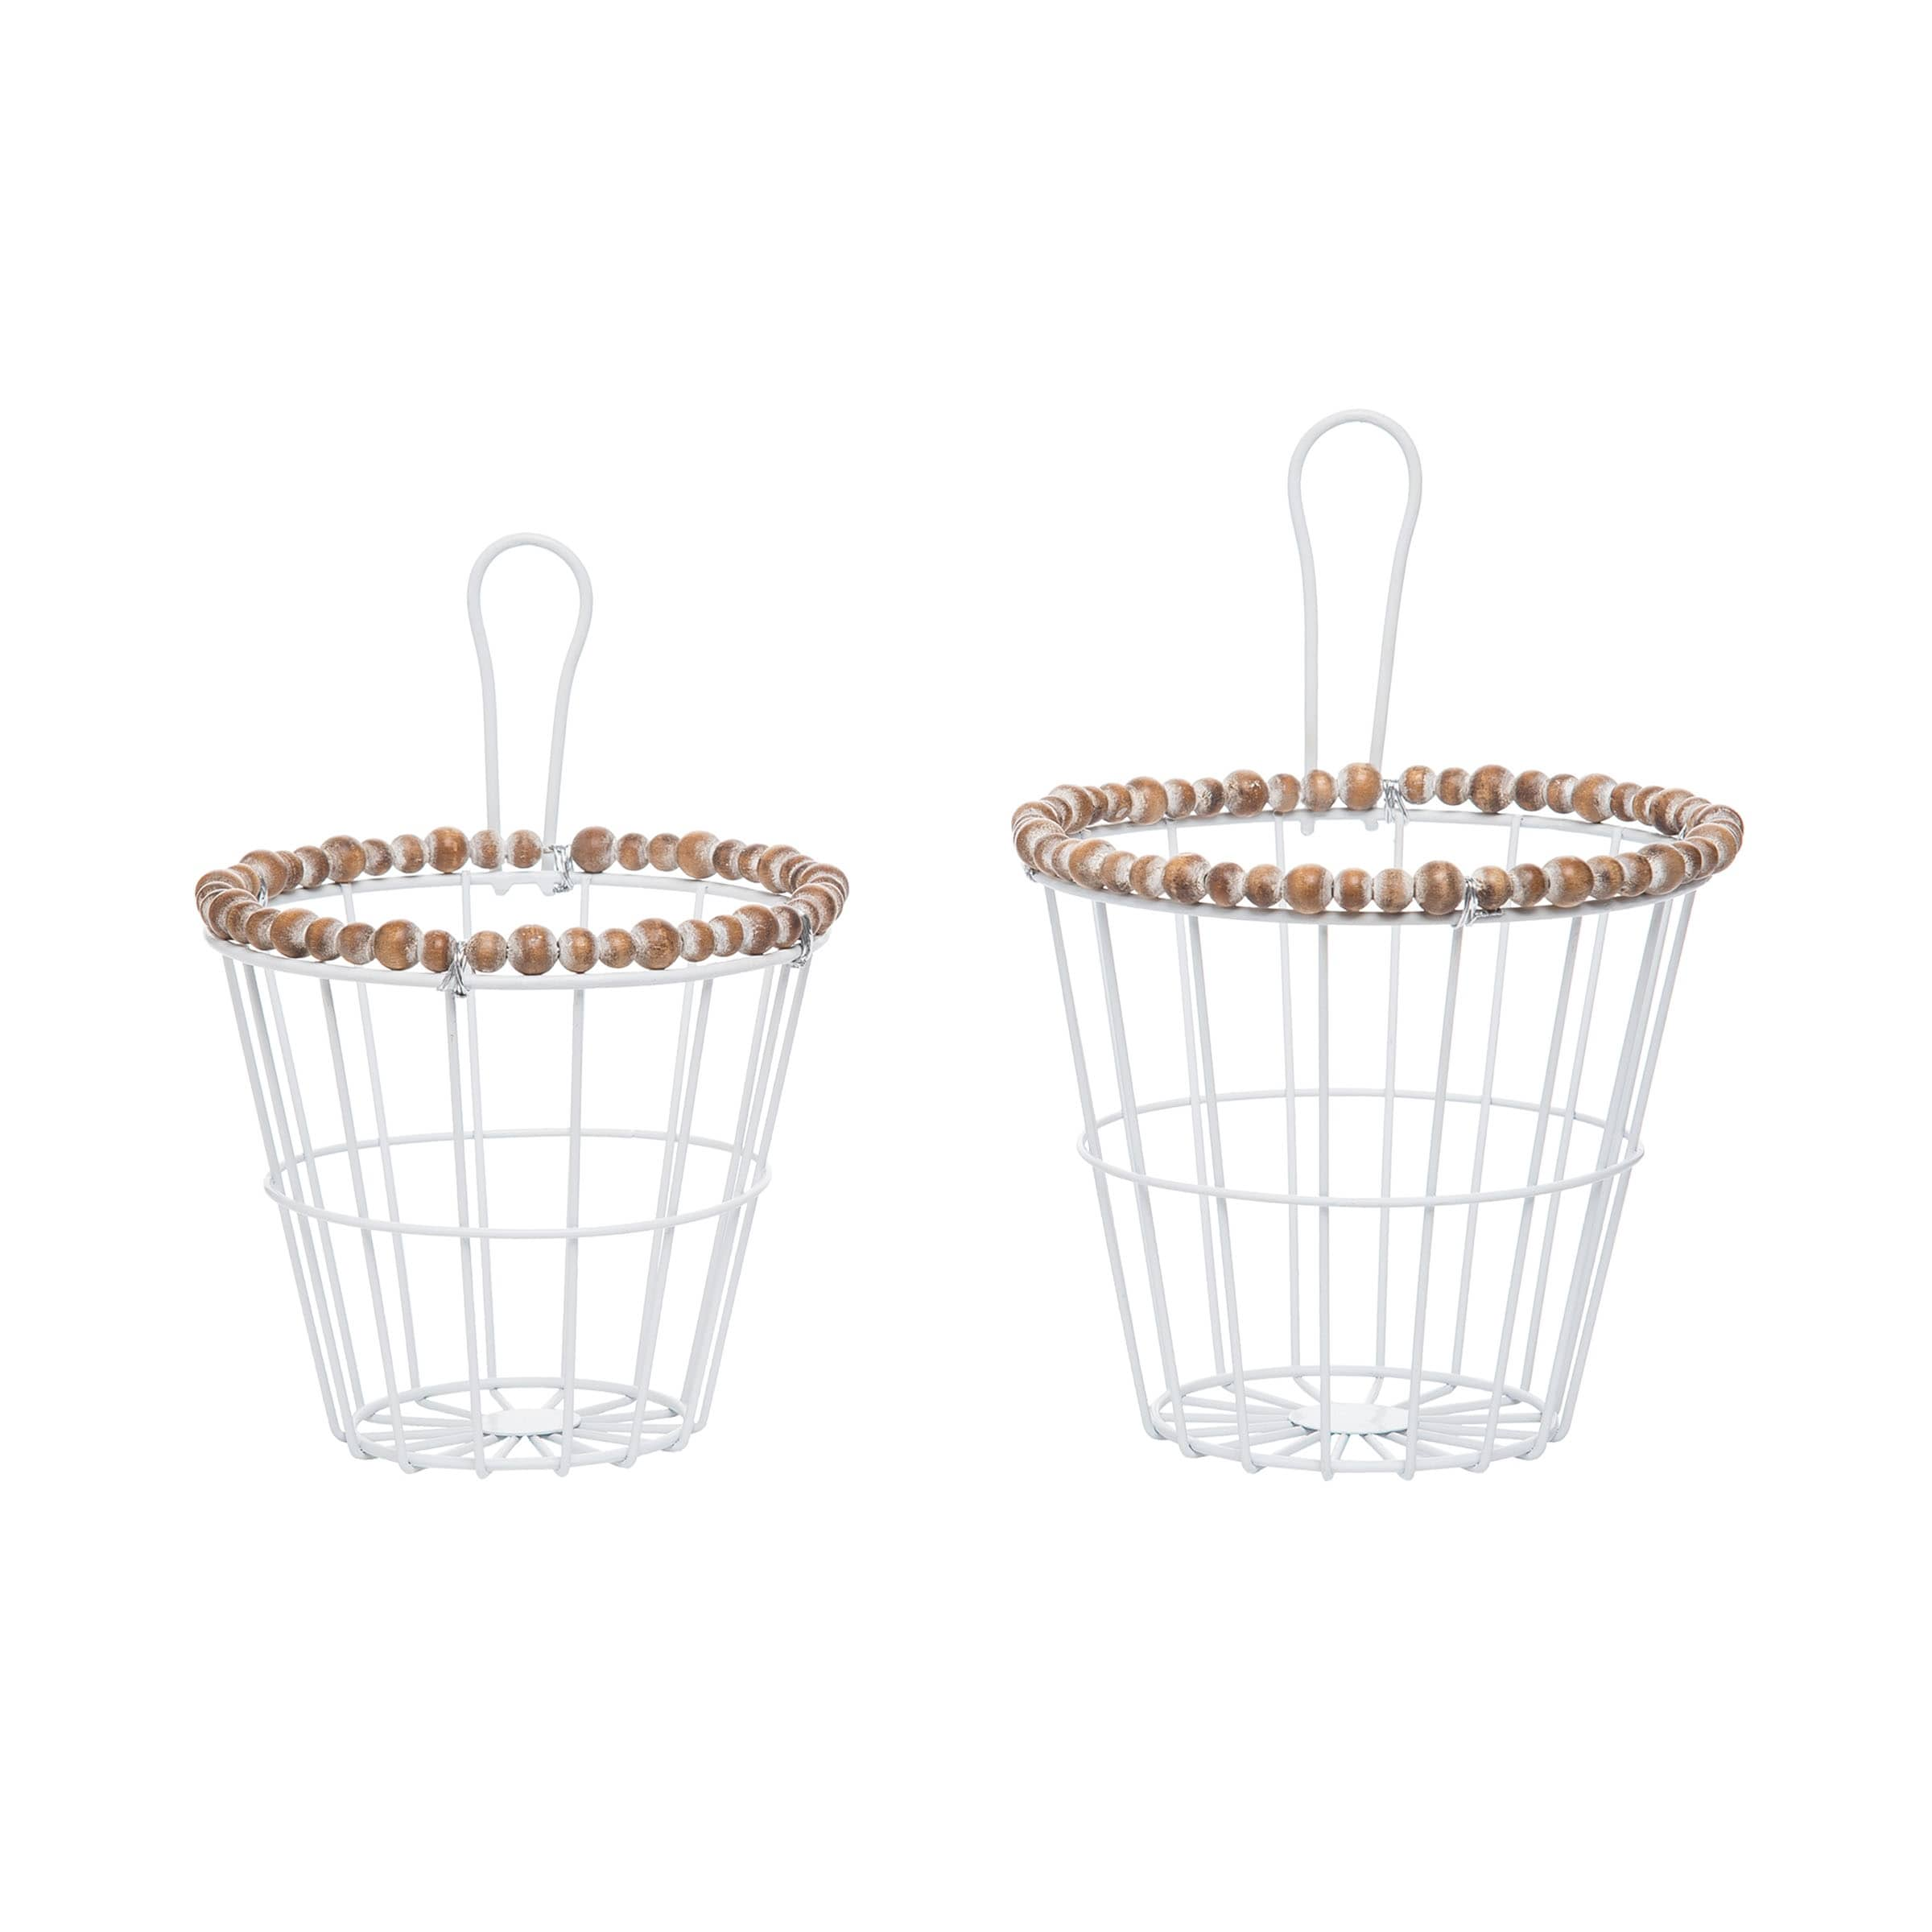 Foreside Home Garden Set Of 2 White Metal And Wood Bead Hanging Decorative Wall Baskets Overstock 30714924